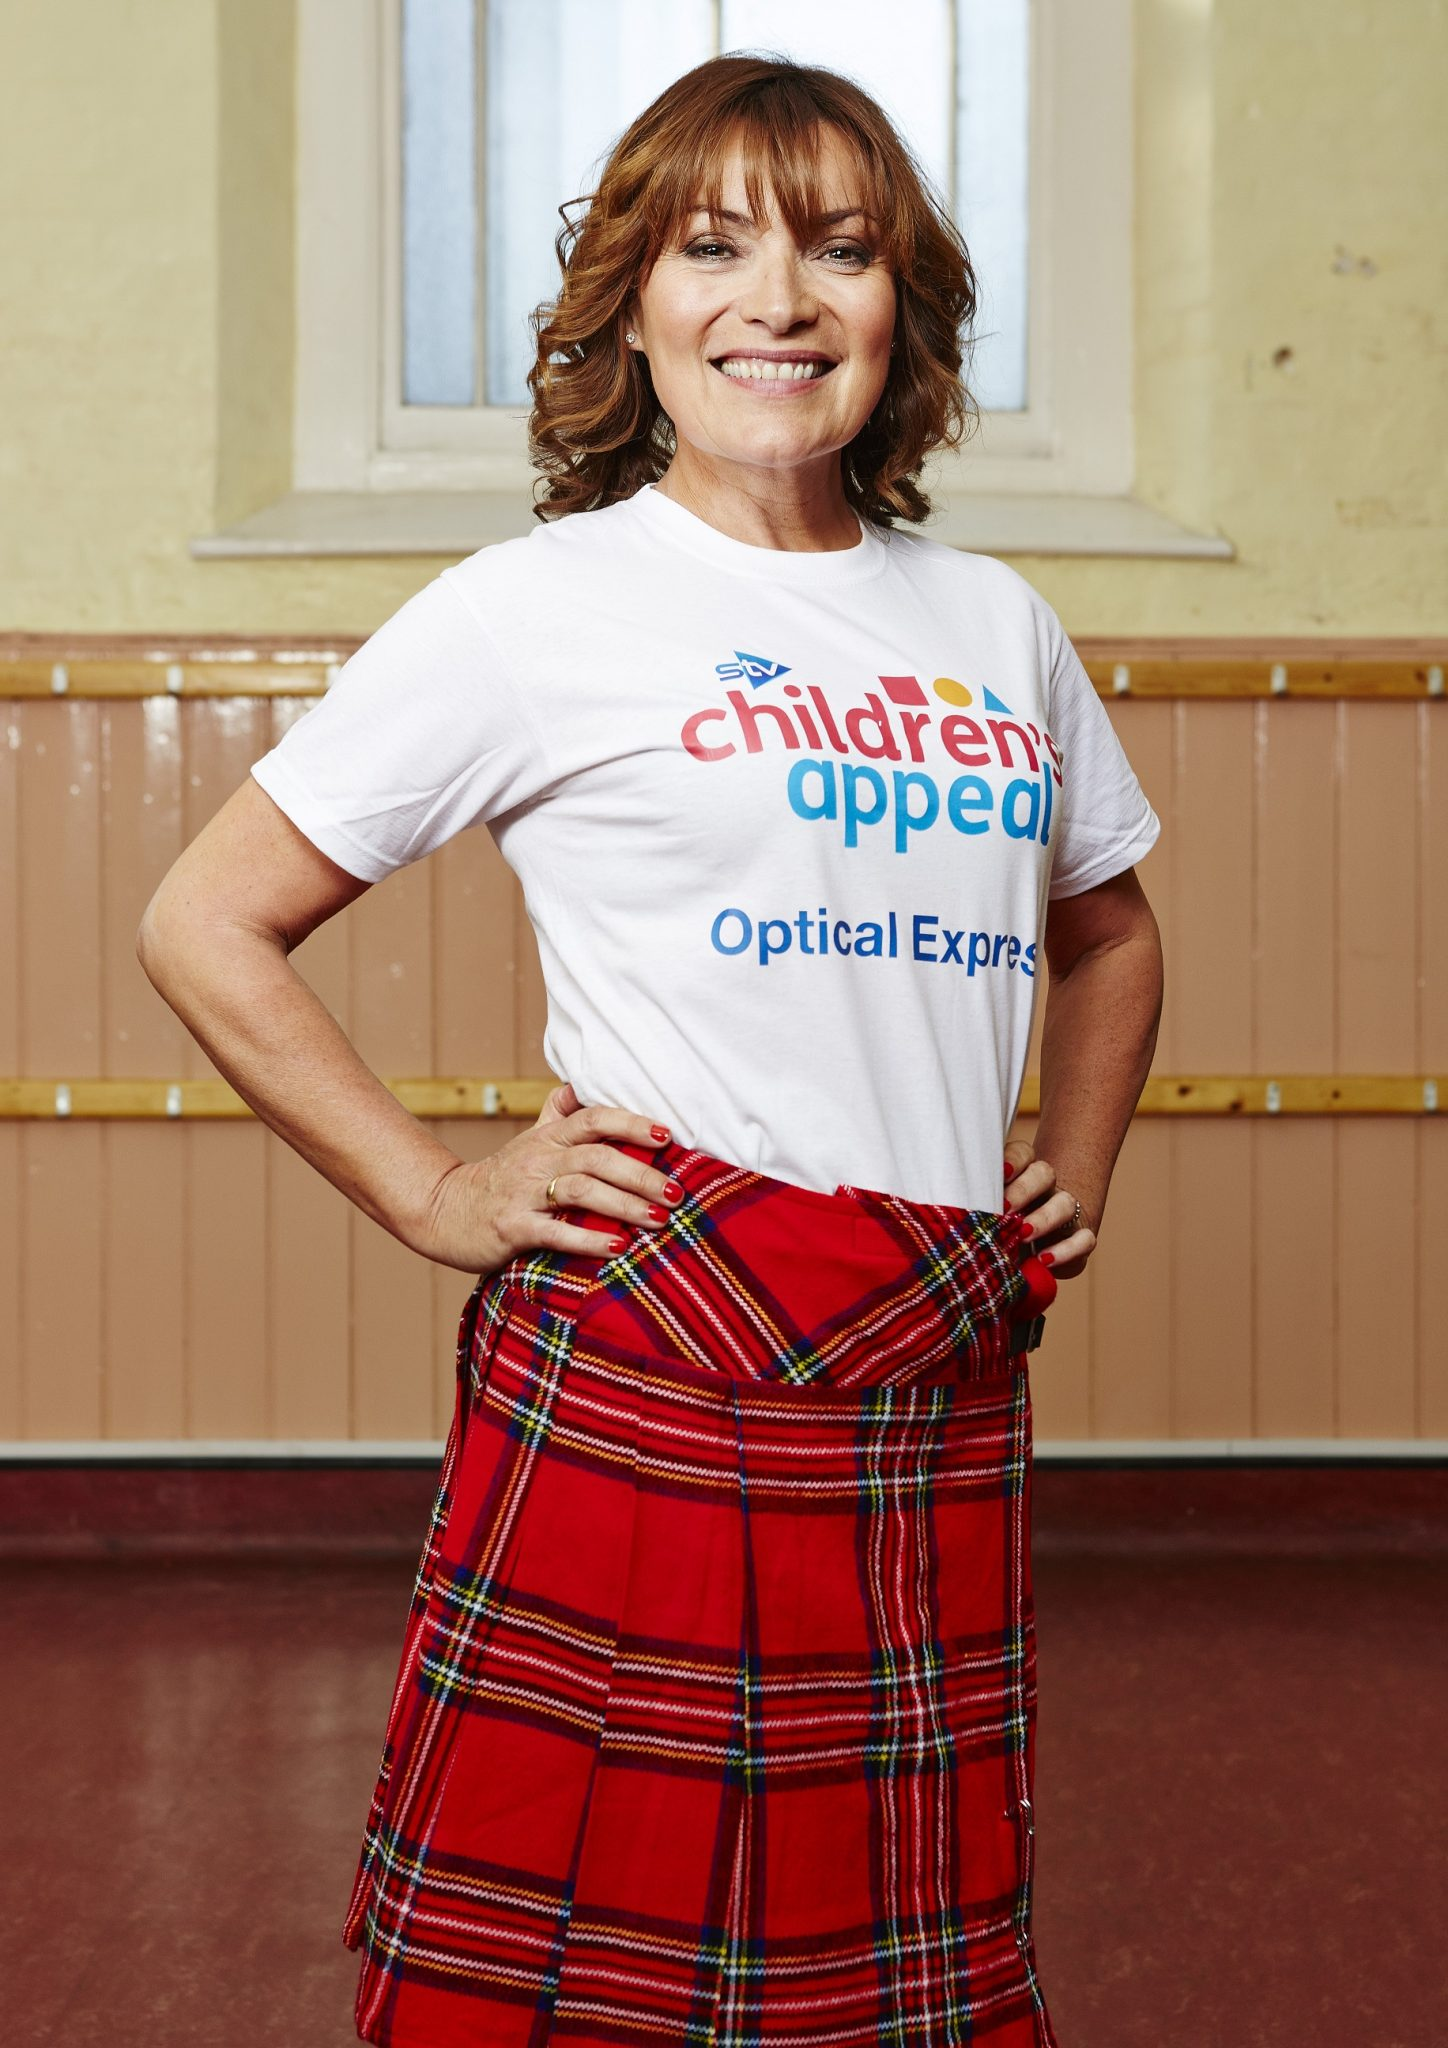 Optical Express joins with TV's Lorraine Kelly to raise funds for STV's Children's Appeal